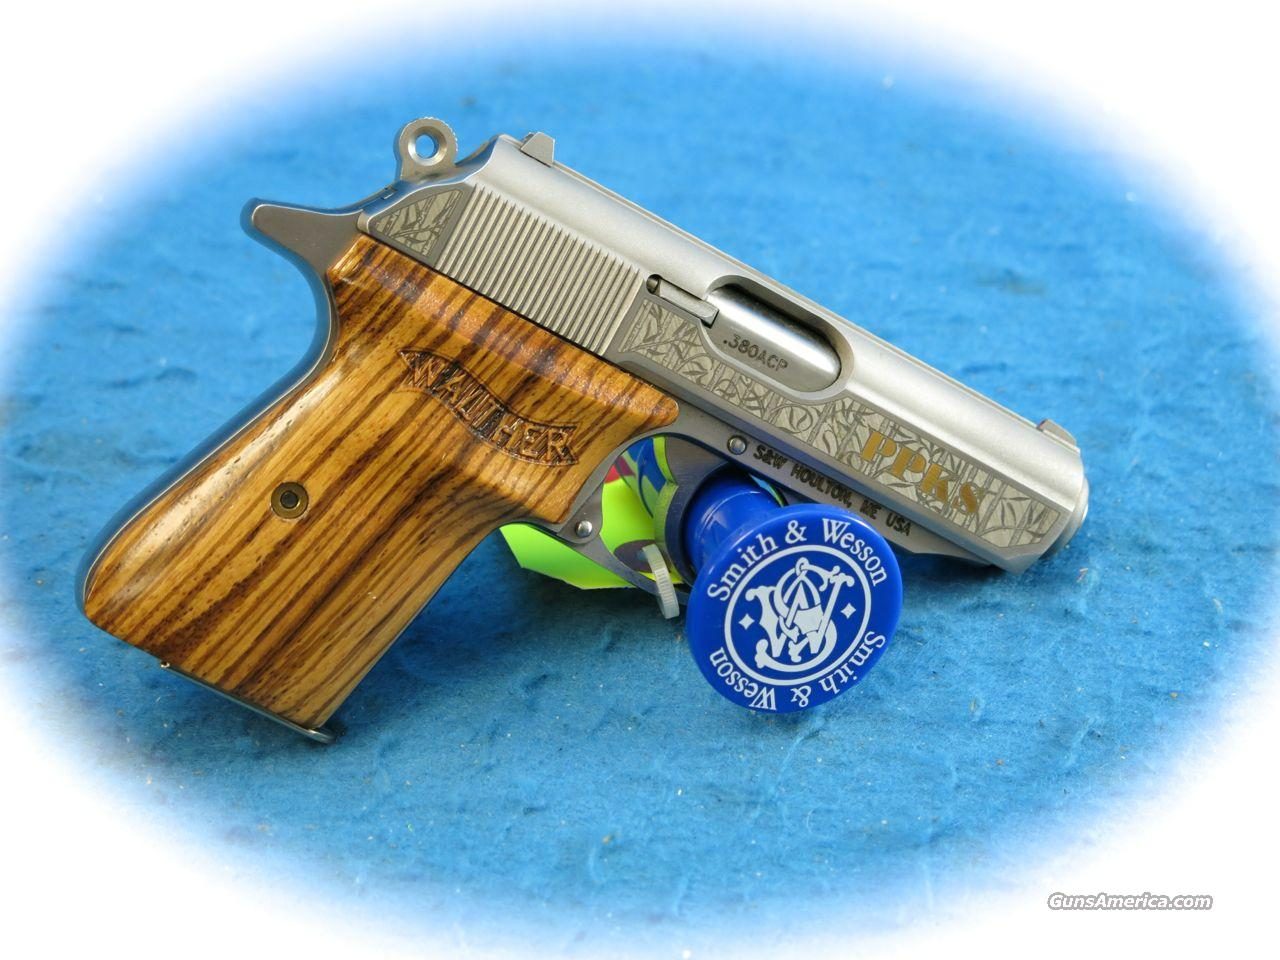 Smith & Wesson Walther PPK/S .380 ACP Factory Engraved **Used**  Guns > Pistols > Walther Pistols > Post WWII > PPK Series